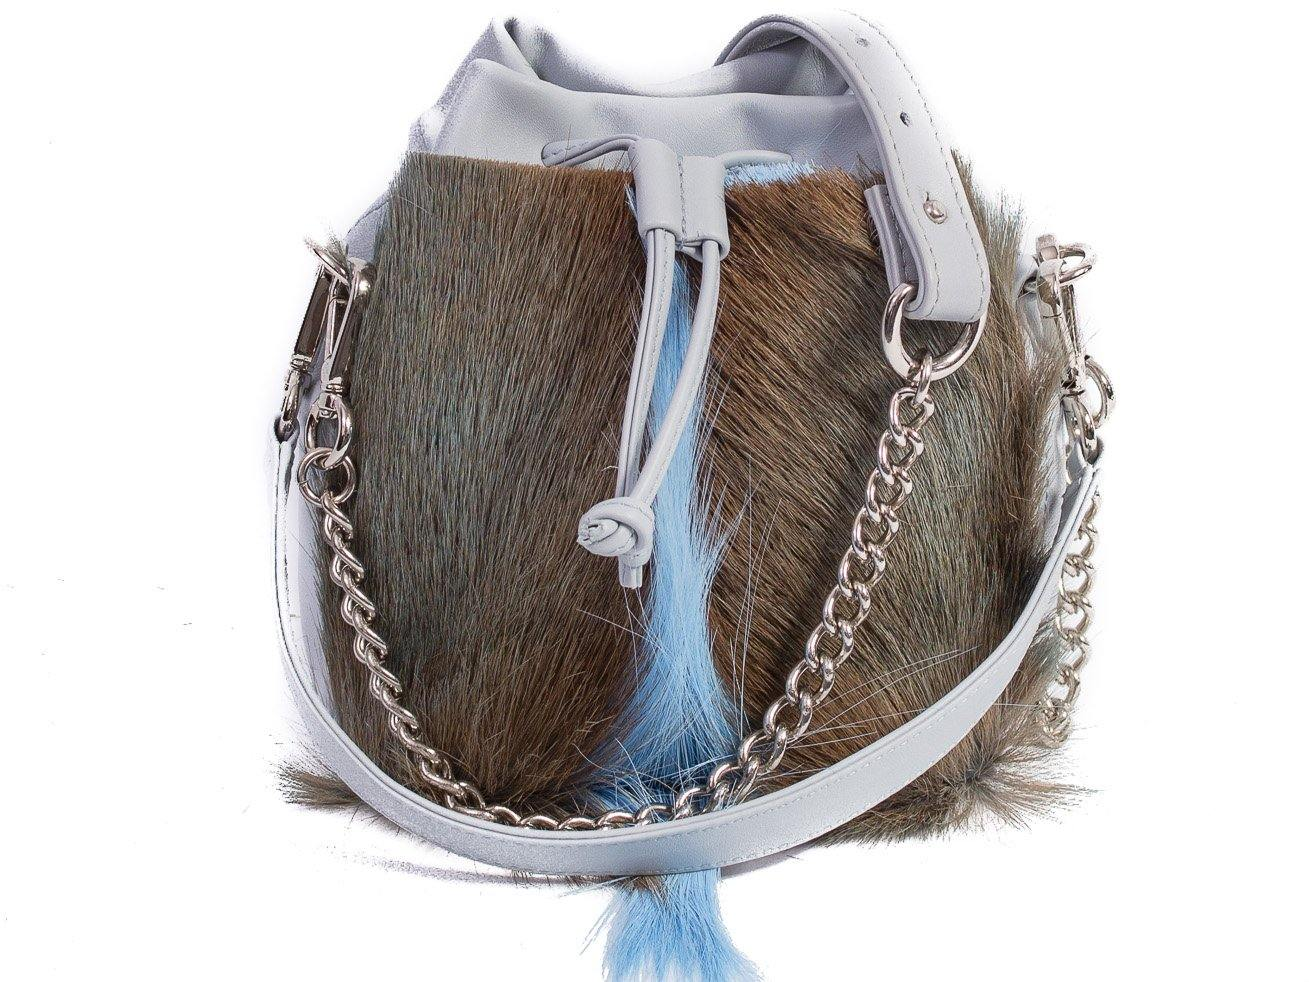 sherene melinda springbok hair-on-hide baby blue leather pouch bag fan front strap